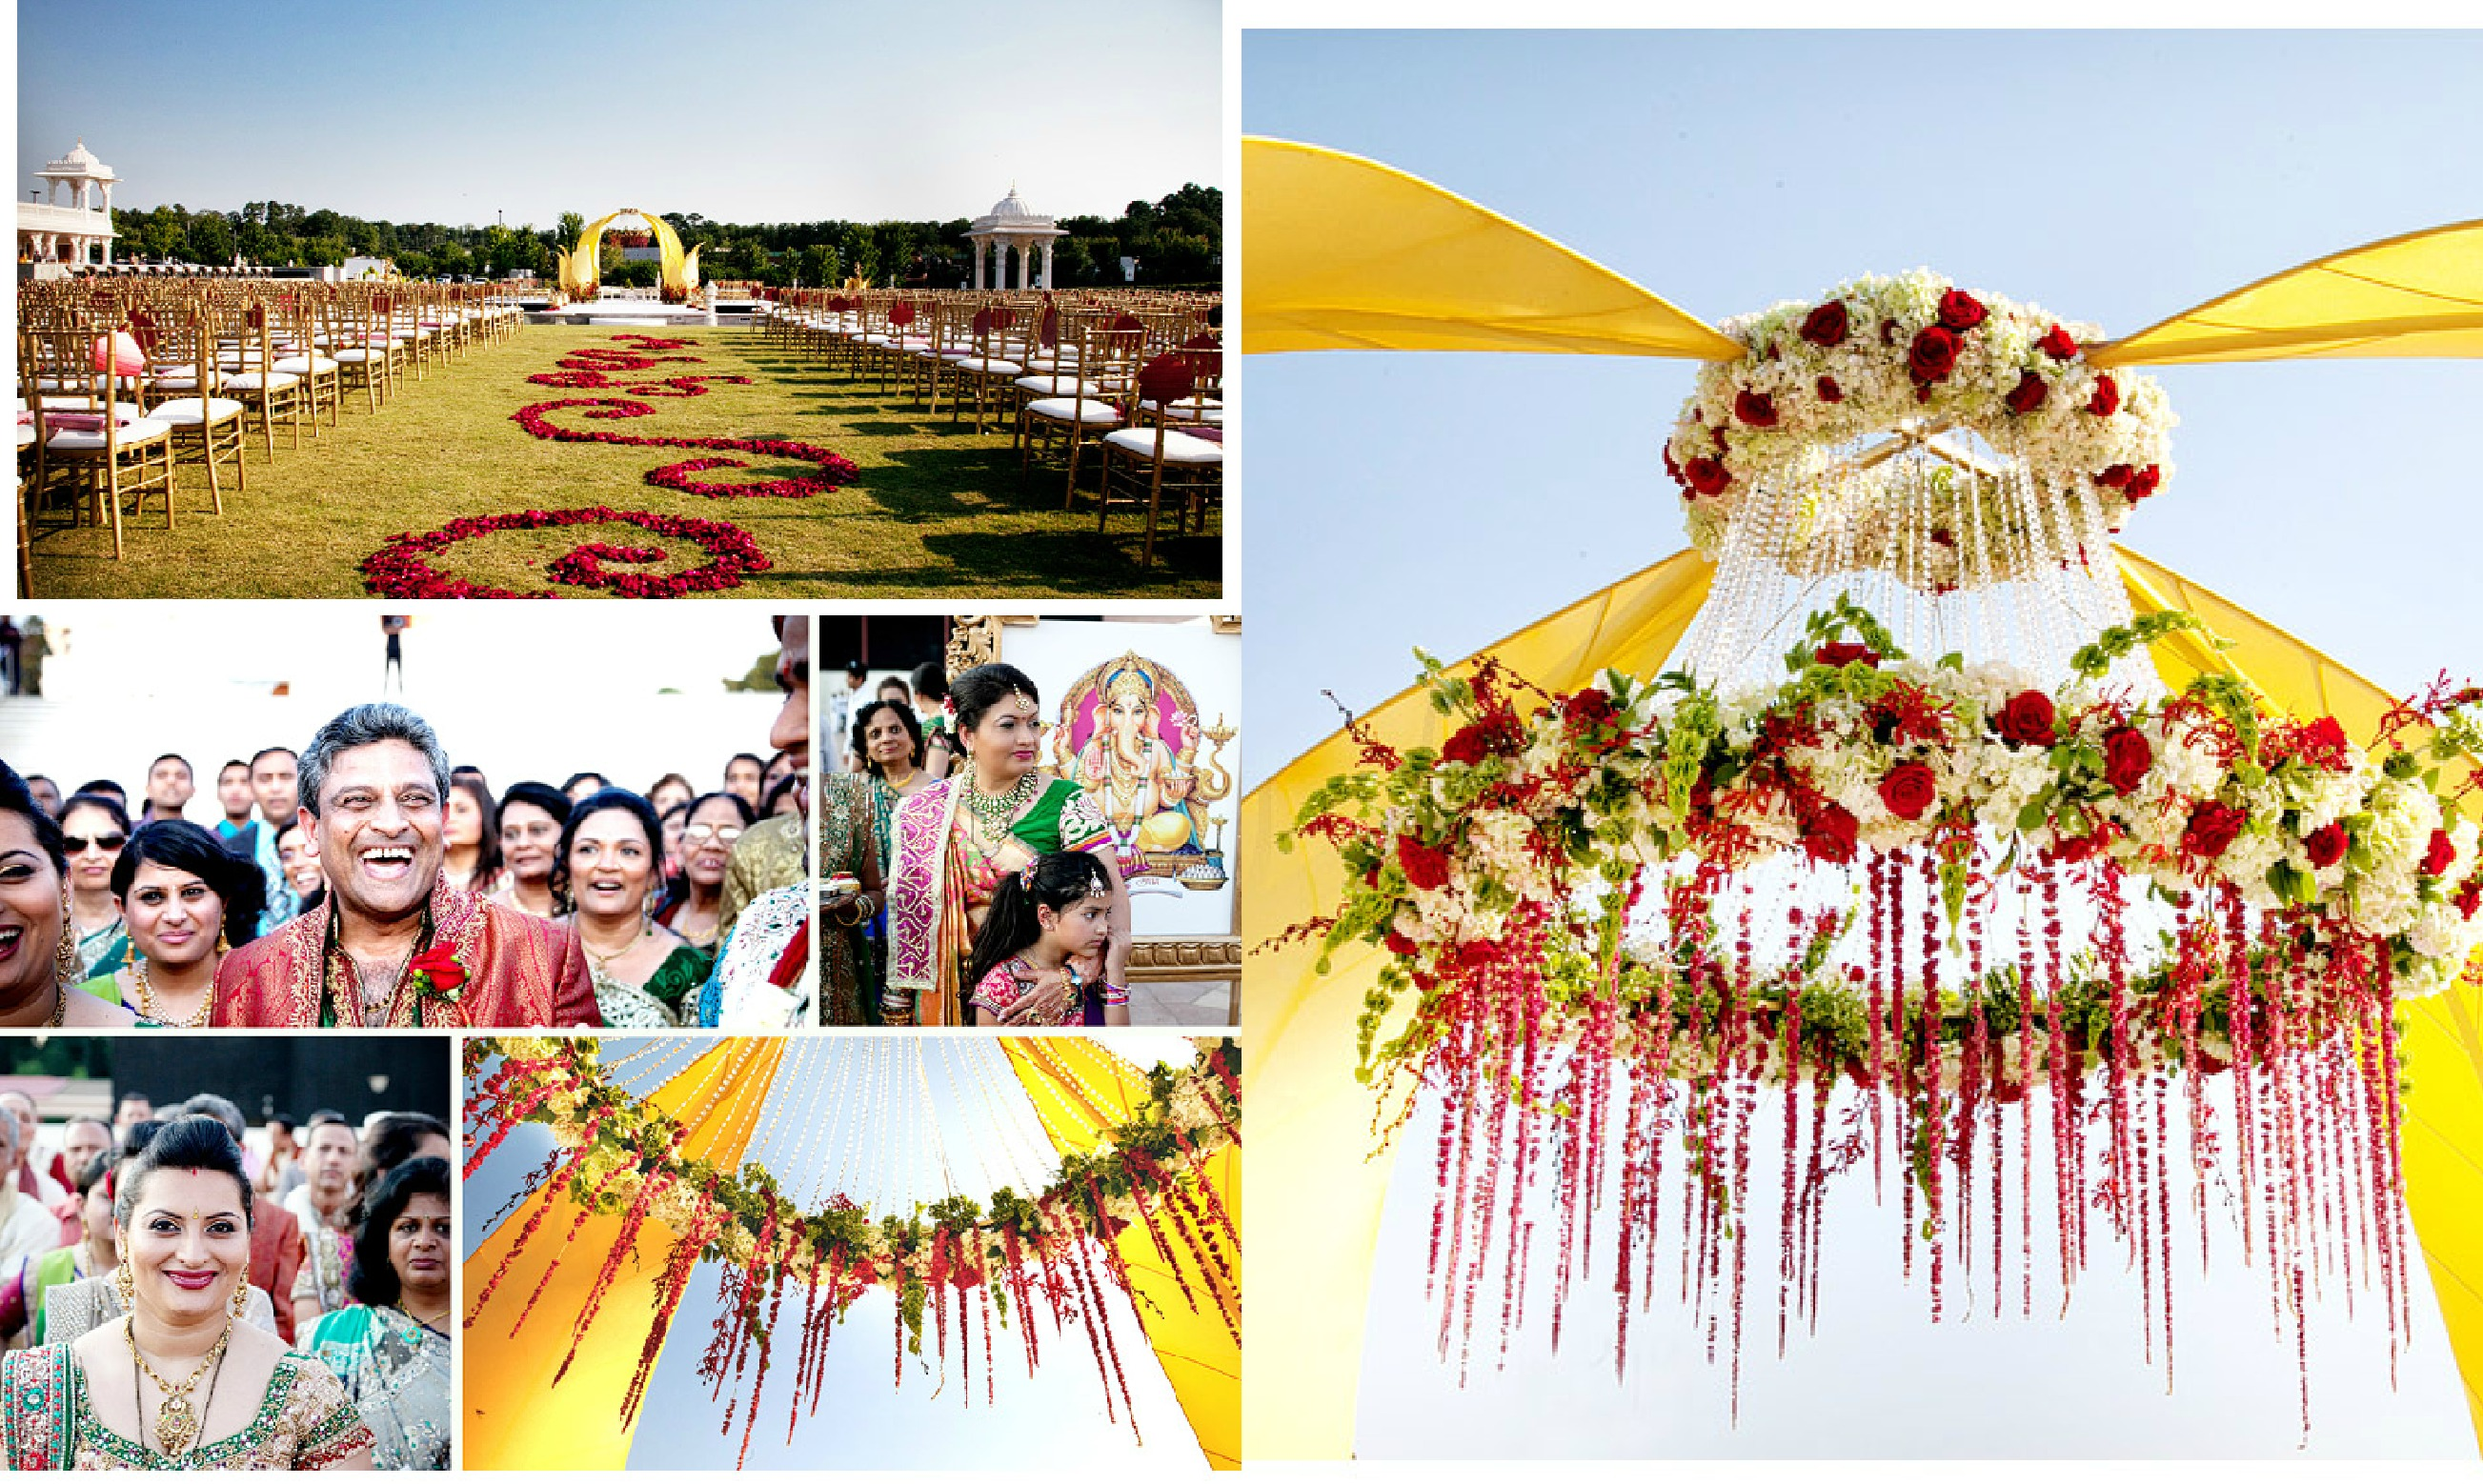 Married Inside a Lotus Blossom - Nikisha and Priyesh - Occasions